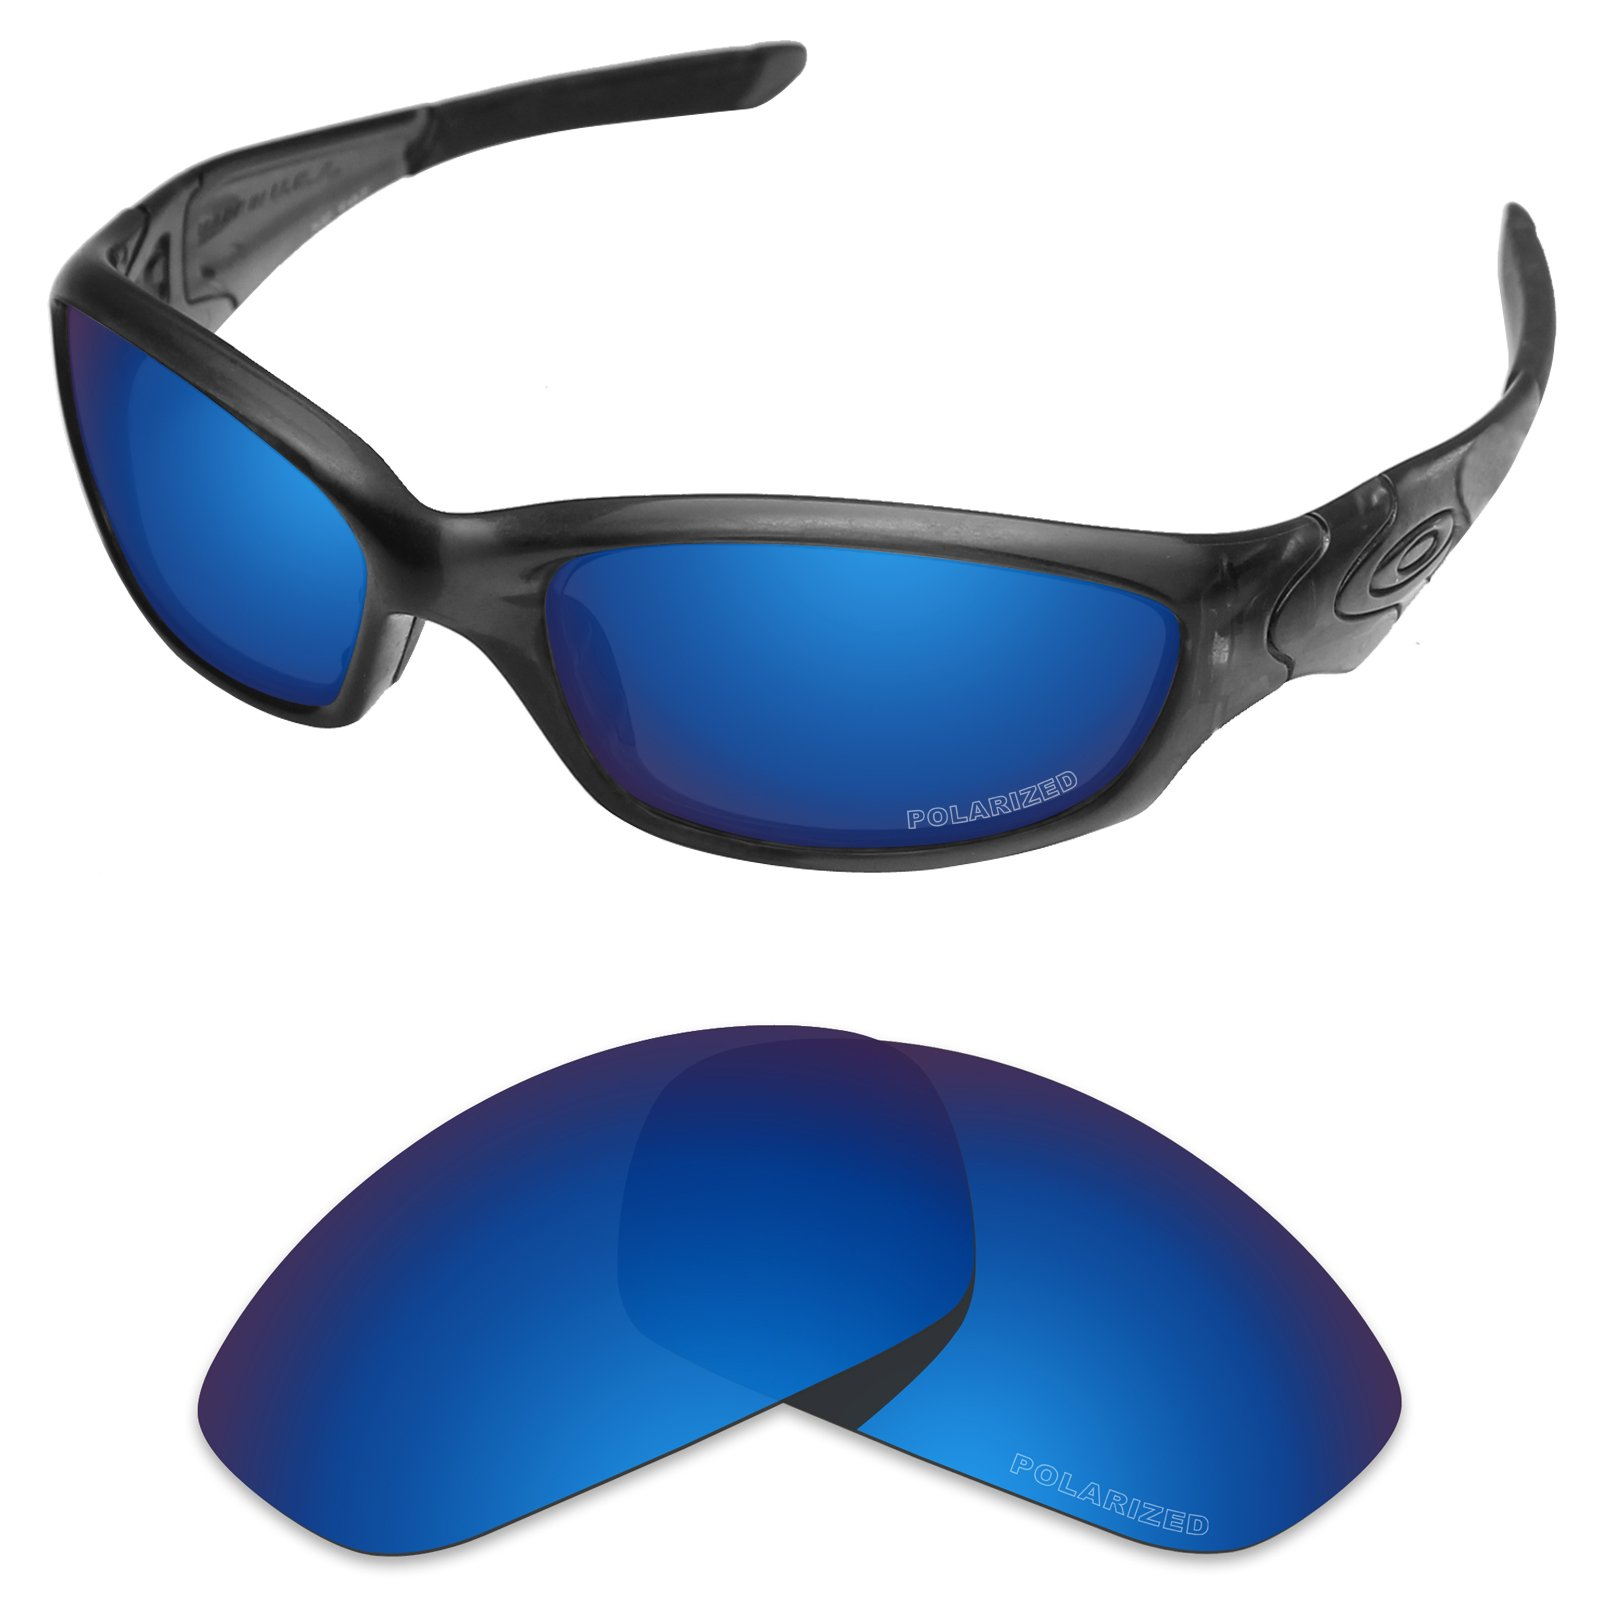 Tintart Performance Replacement Lenses for Oakley Straight Jacket 2007 Sunglass Polarized Etched-Sapphire Blue